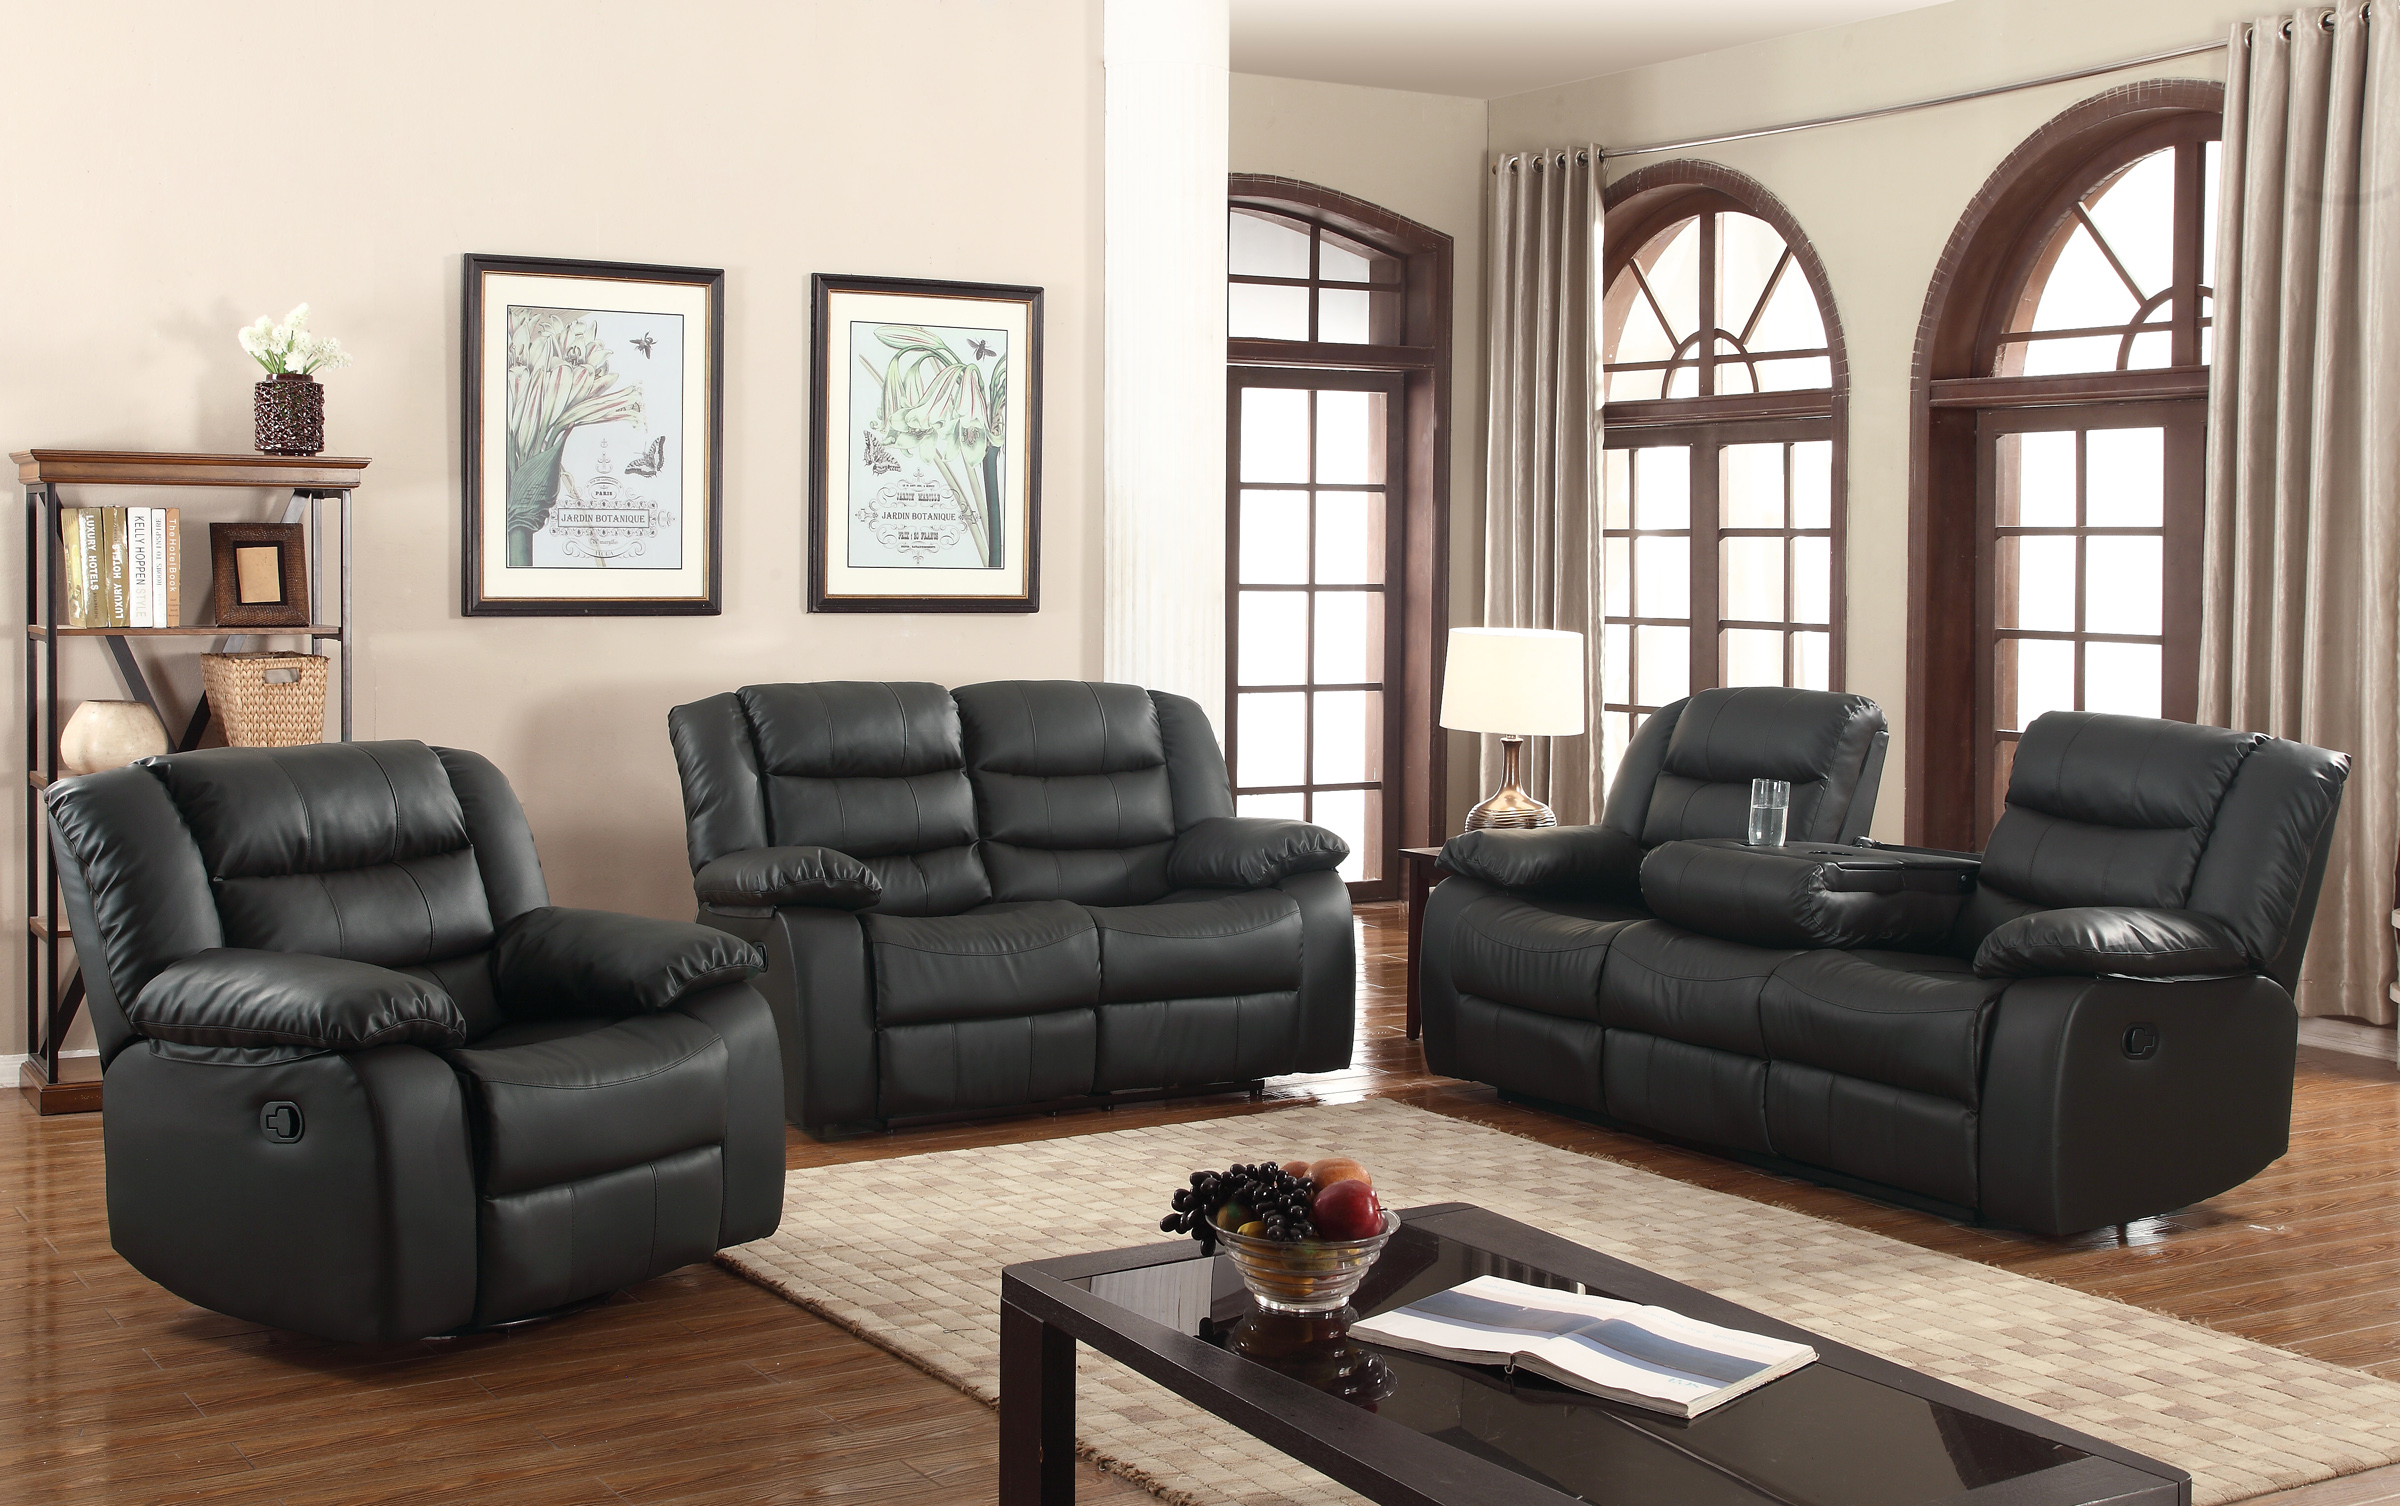 Admirable 3 Piece Leather Living Room Set Gmtry Best Dining Table And Chair Ideas Images Gmtryco